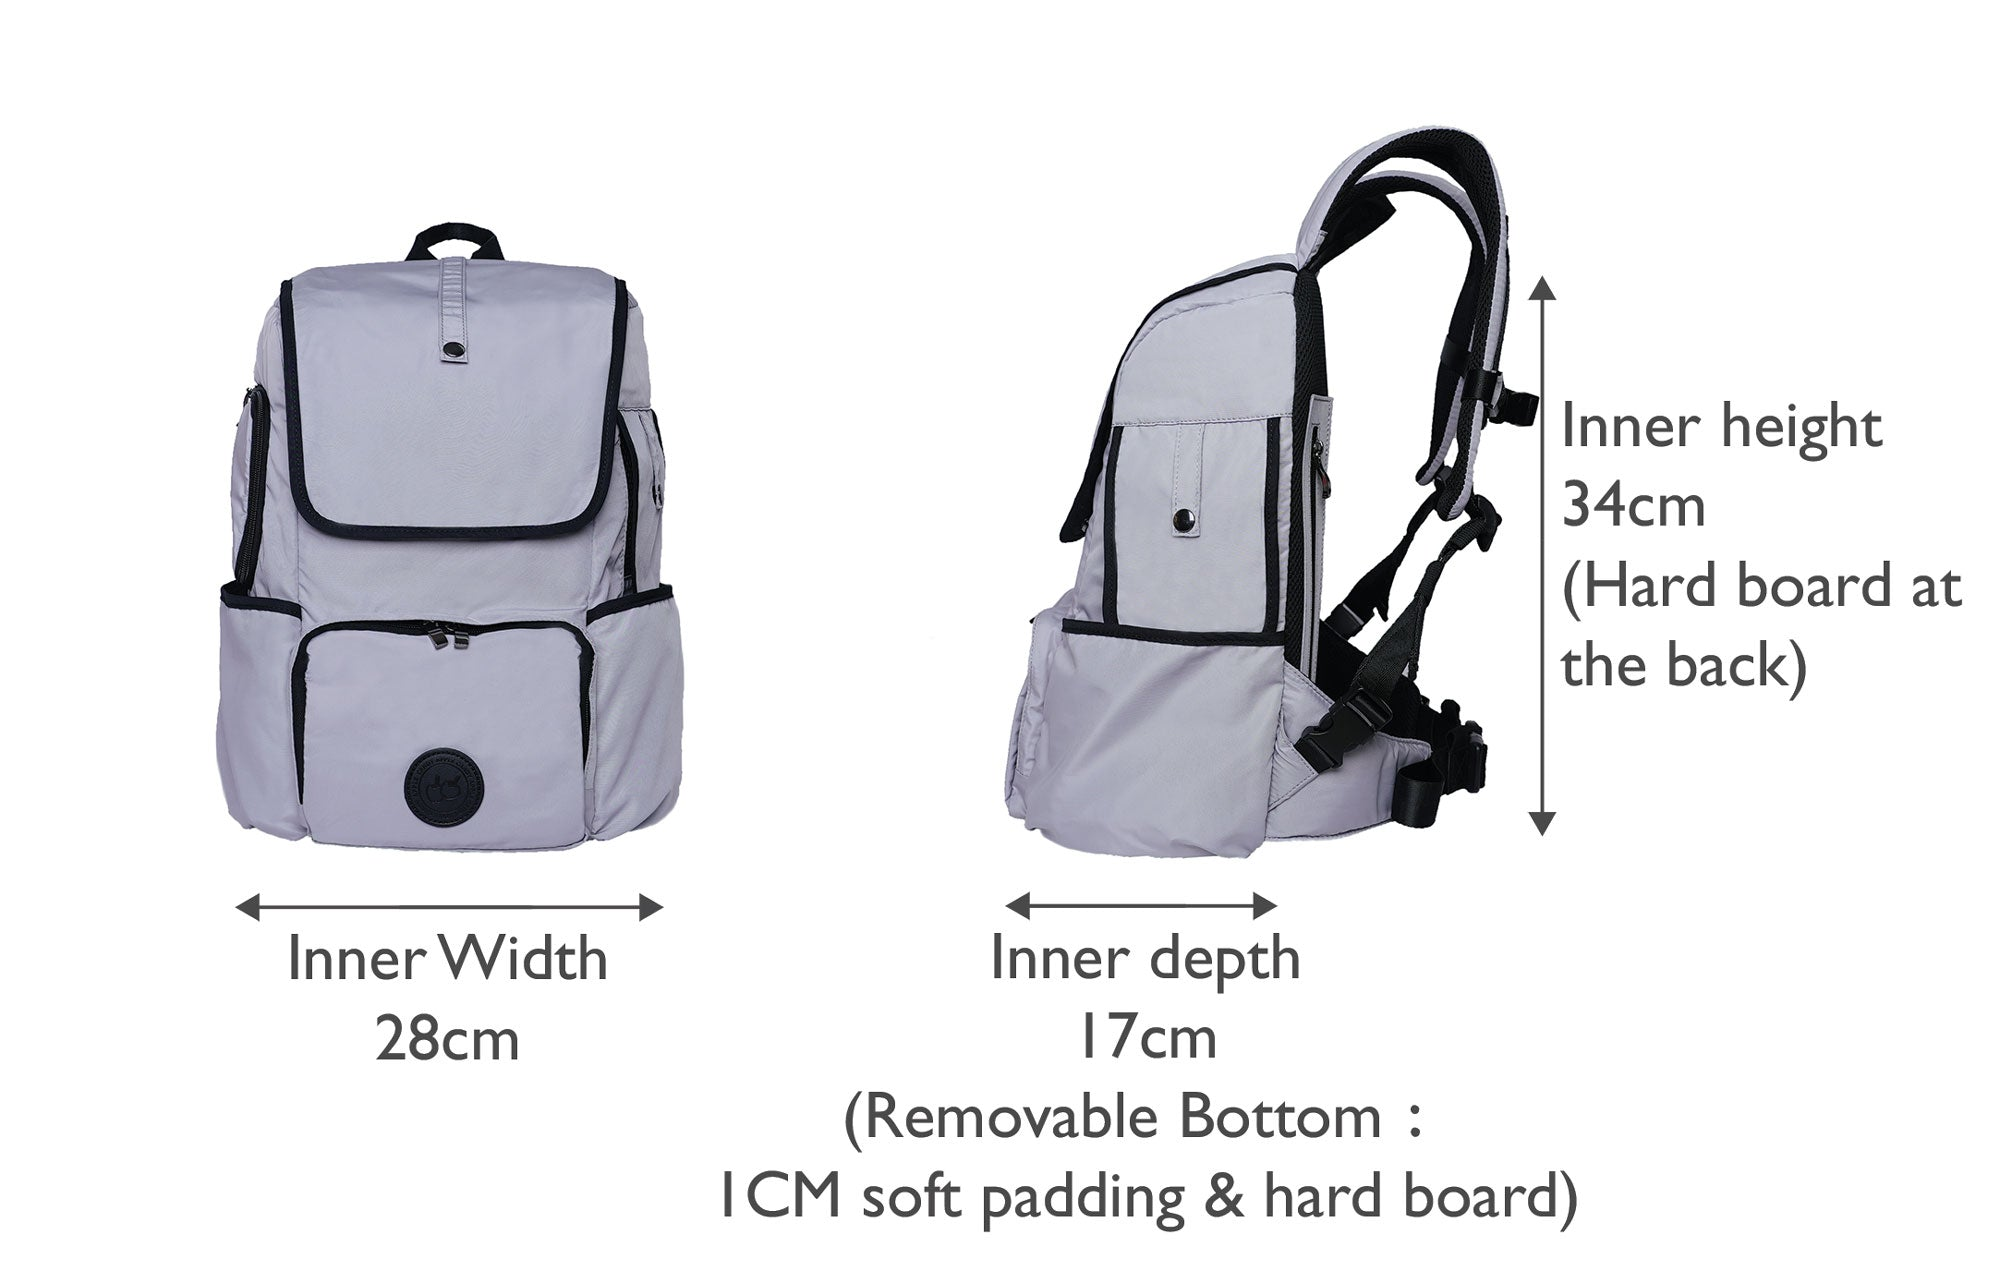 Backpack dog carrier for small dog, dimension of the dog carrier